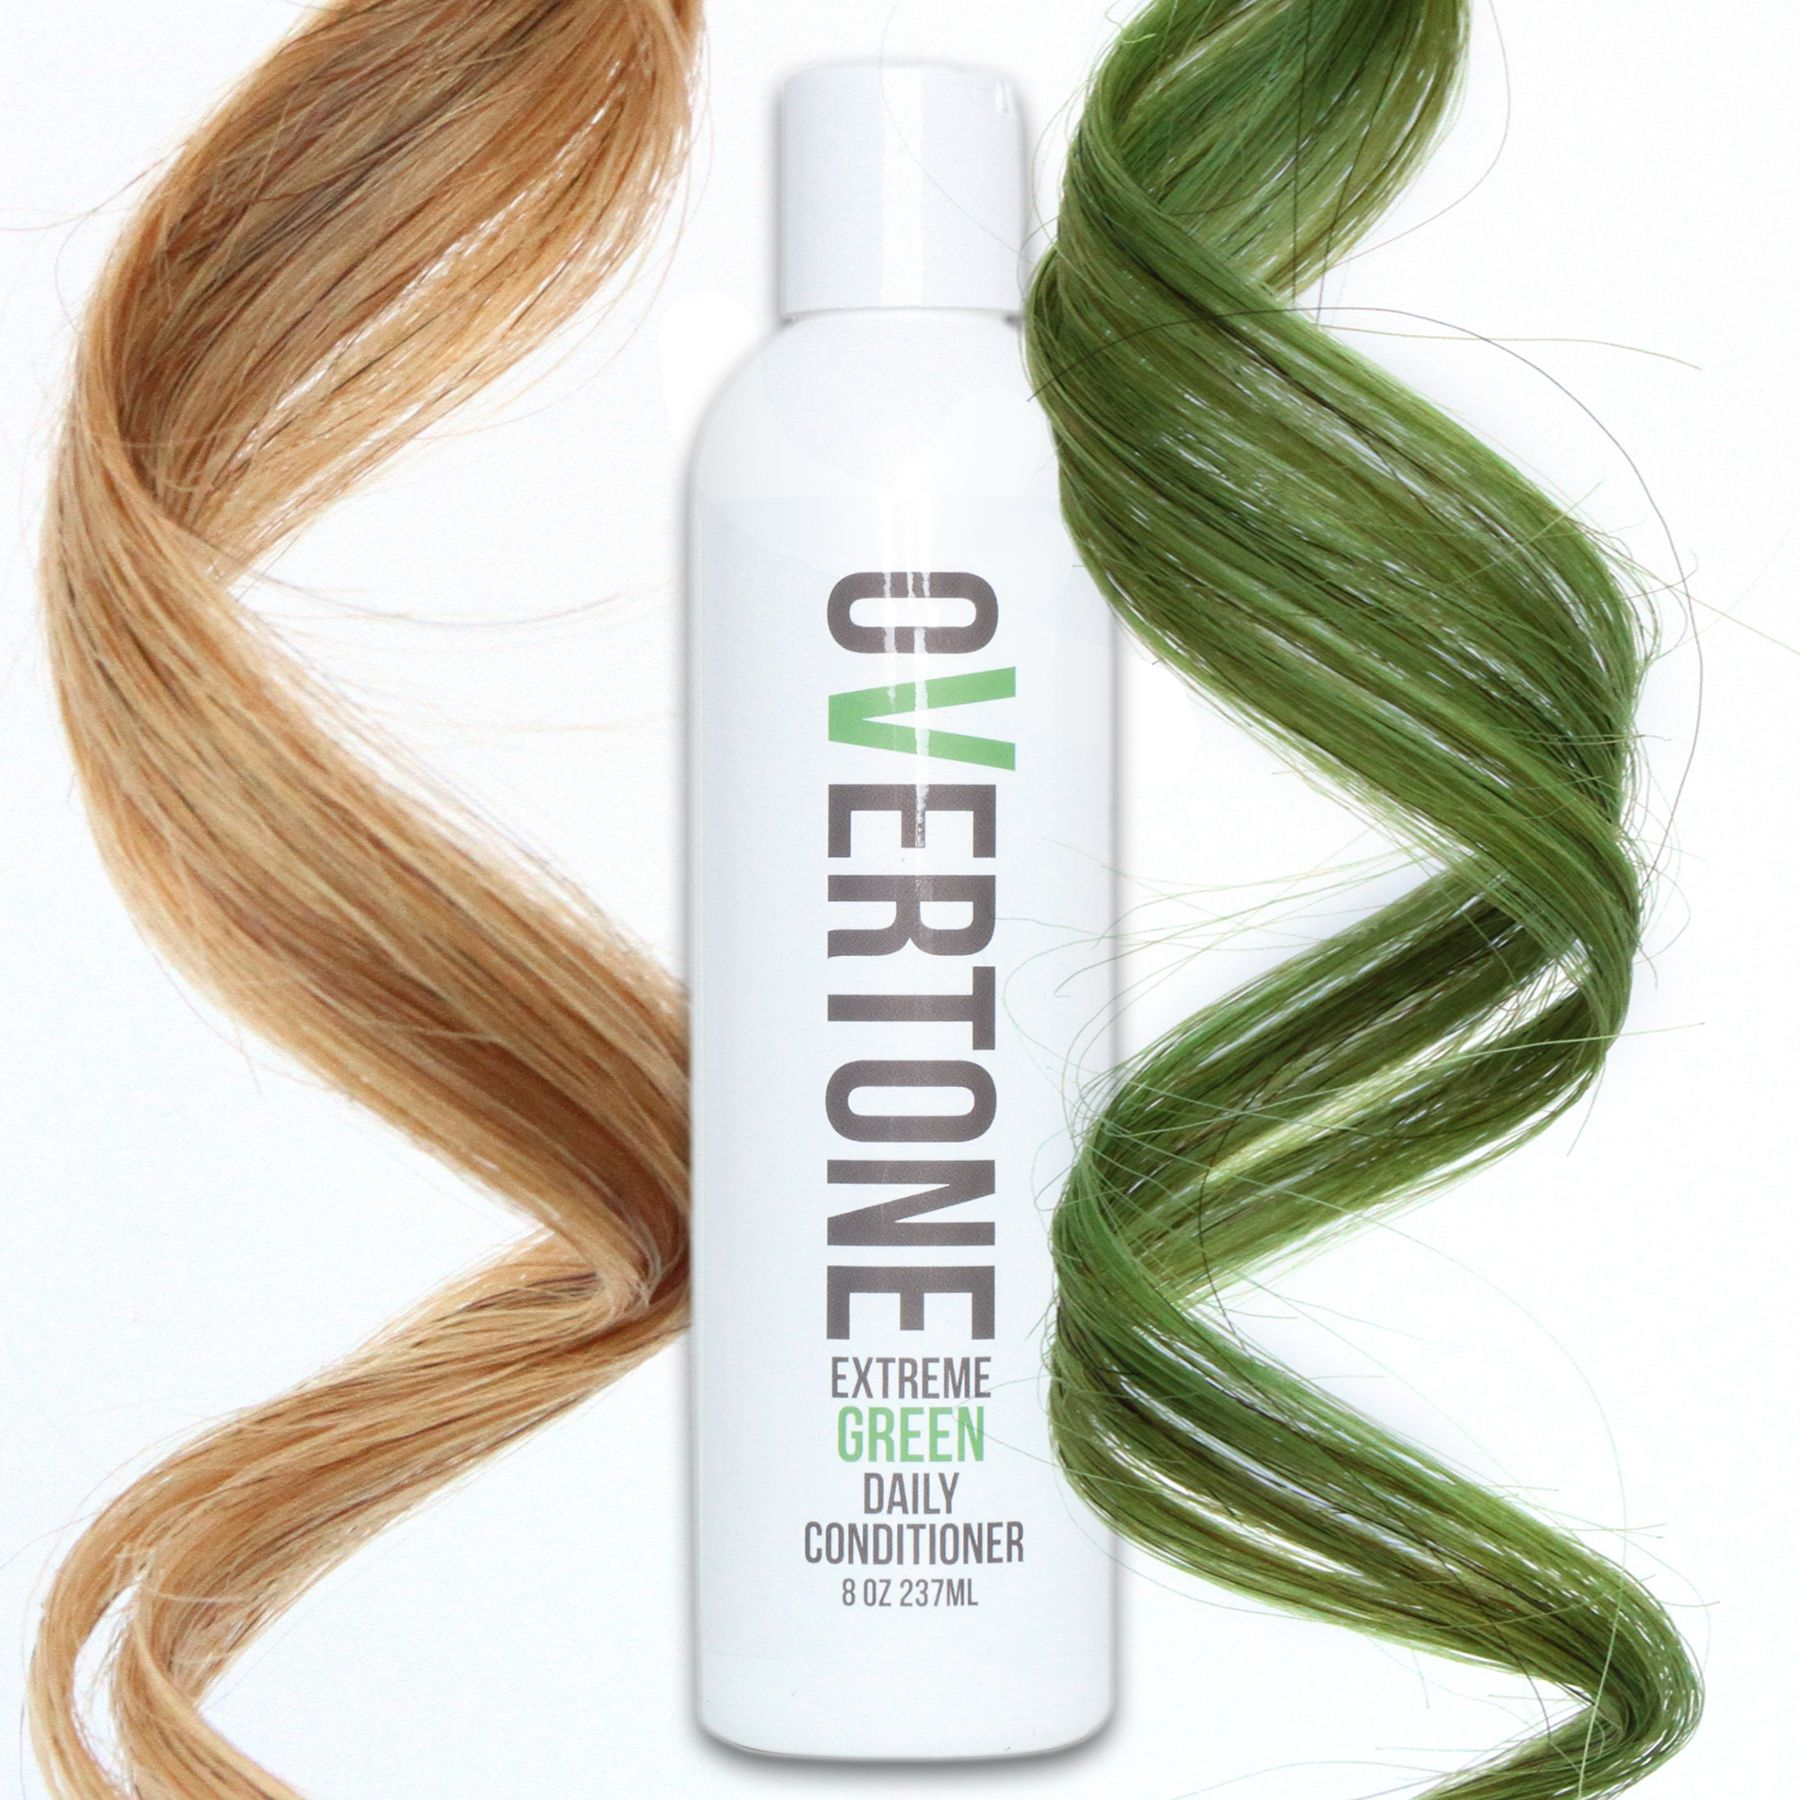 oVertone Extreme Green Daily Conditioner is a damage-free way to add color to your hair and keep the color looking fresh 24/7.